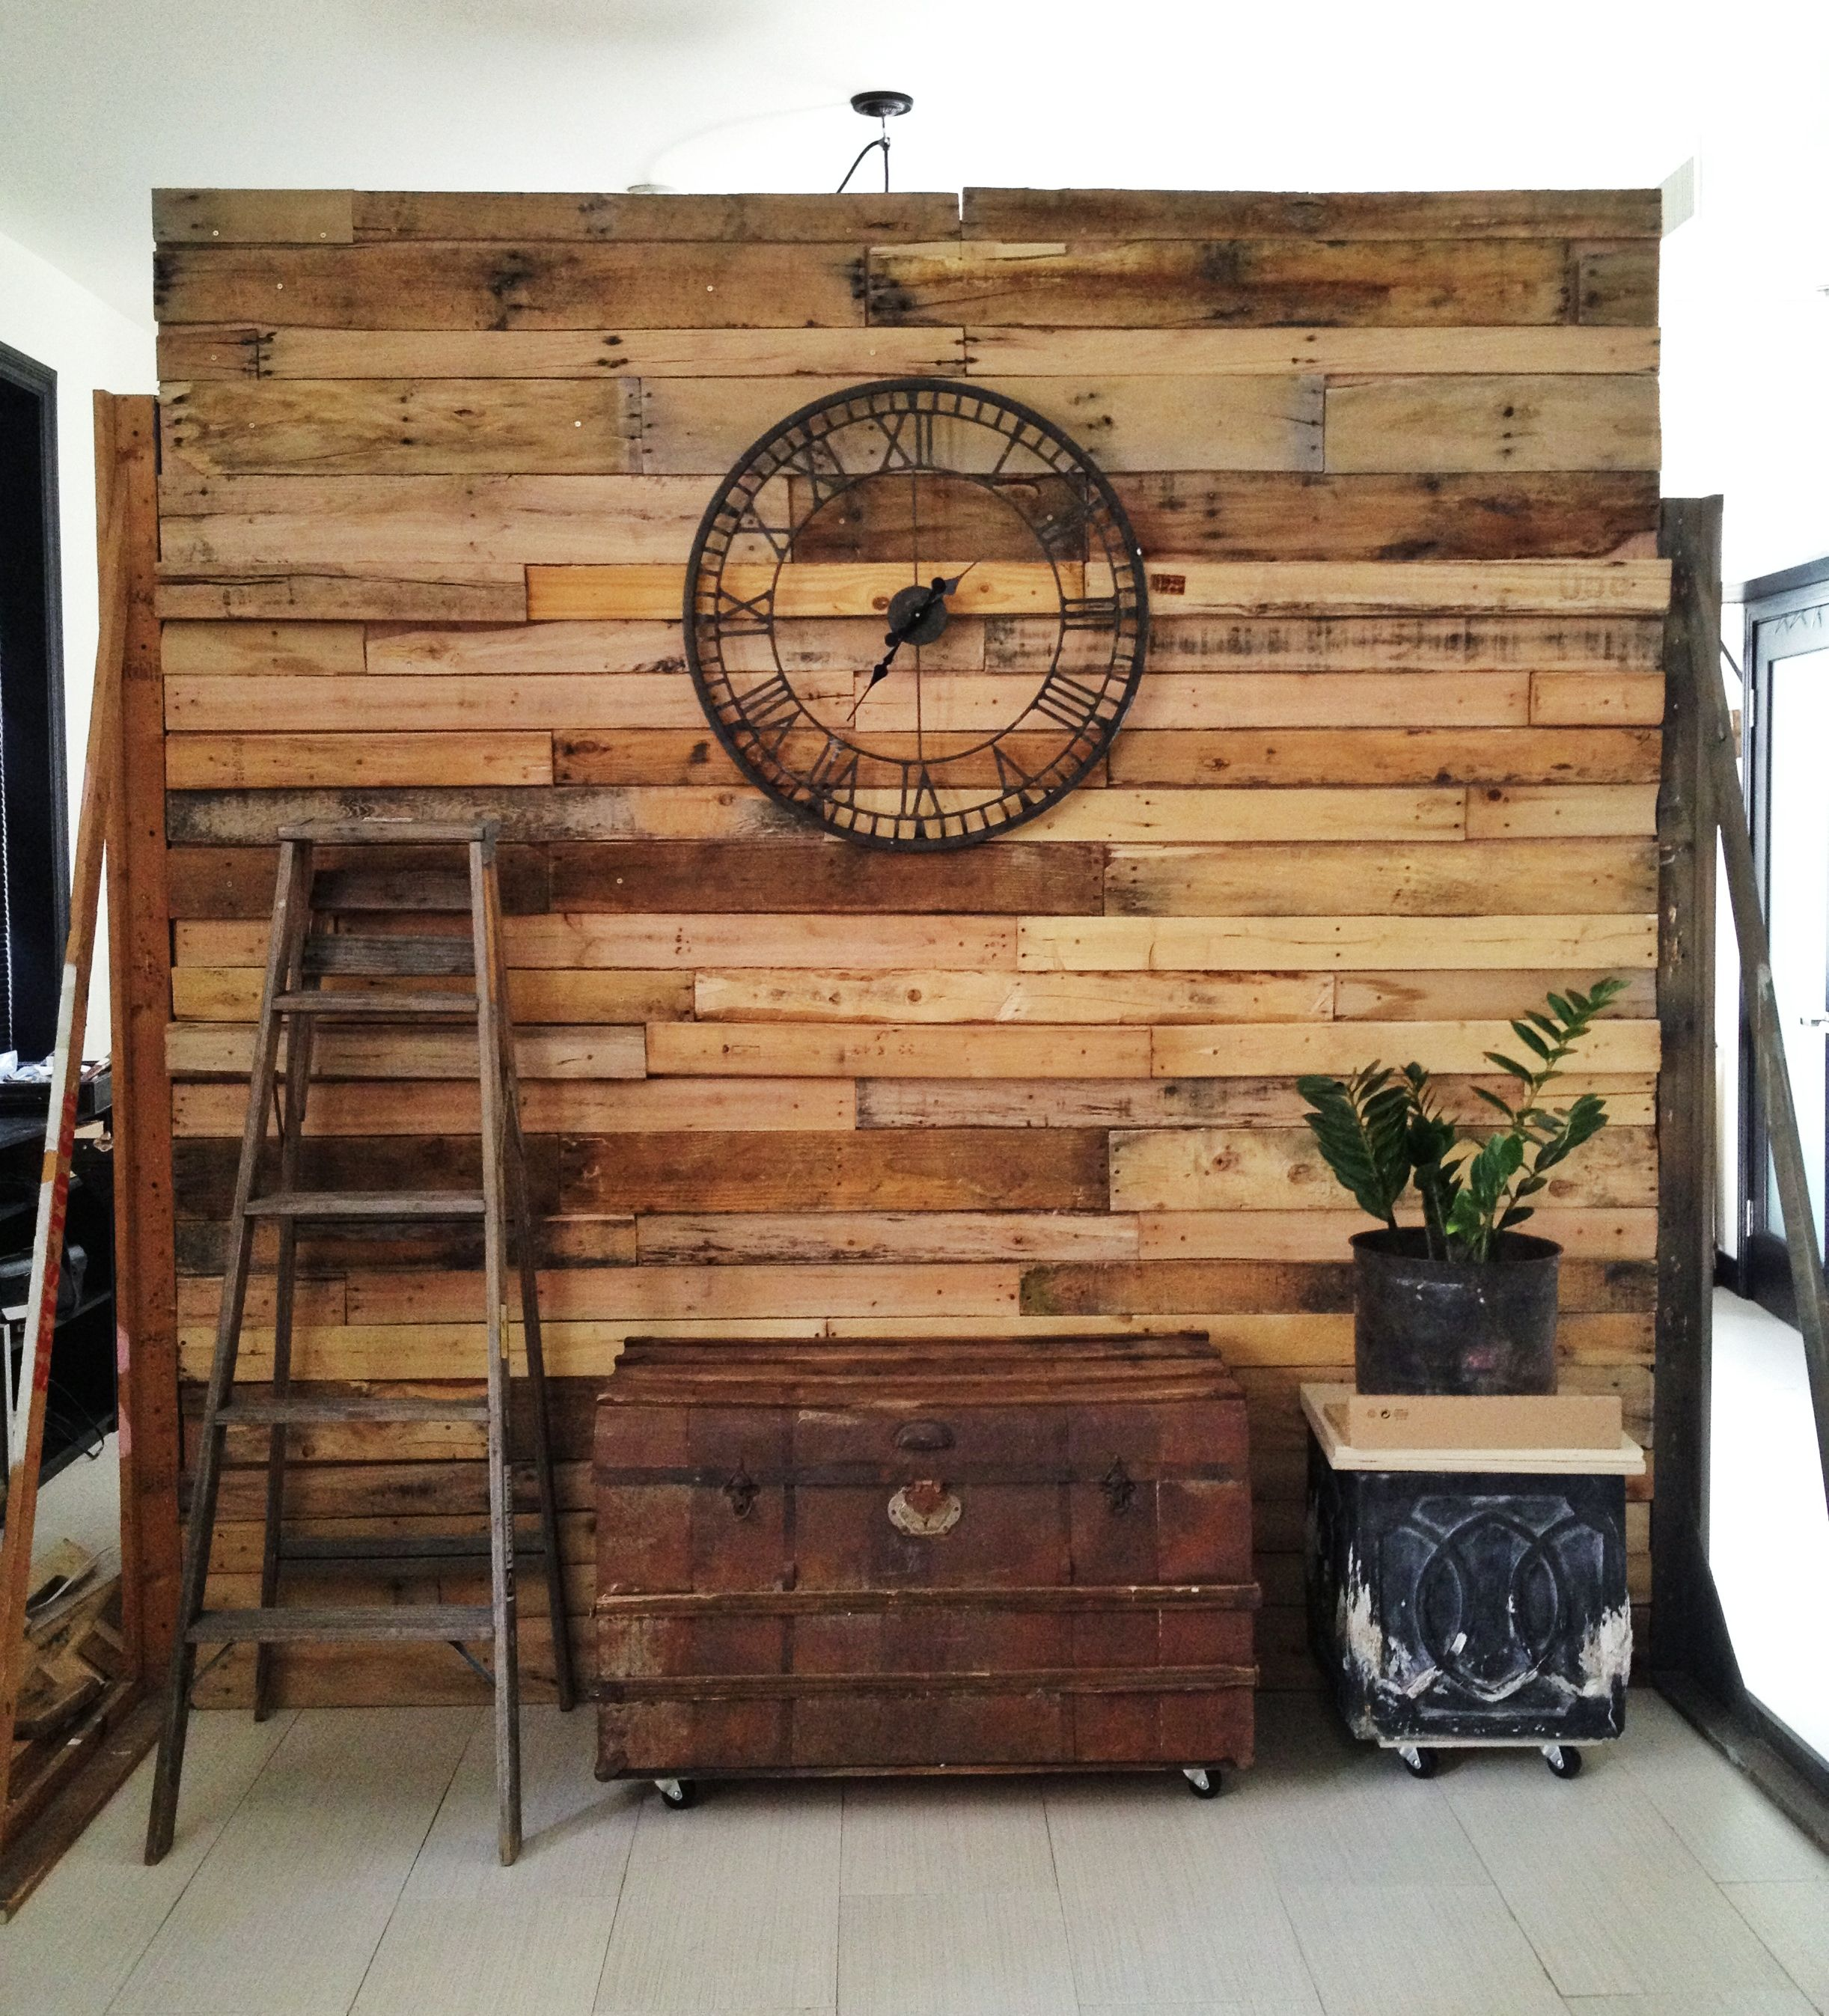 How To Separate A Room Without A Wall My New Wall Partition To Separate My Bedroom Used Pallet Wood For